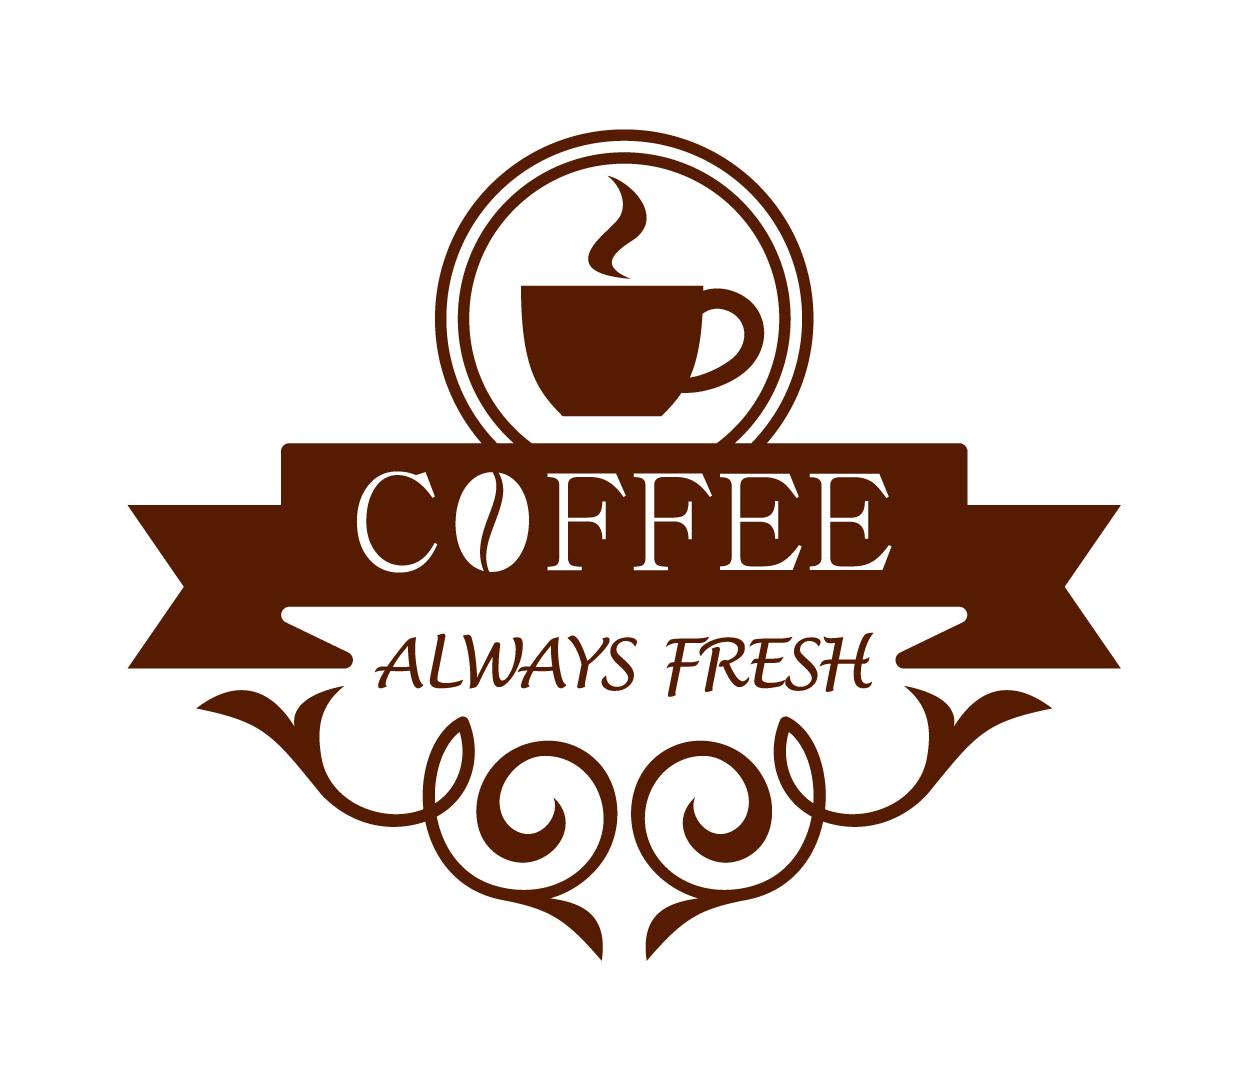 Coffee Cup Food Bean Cafe Icon PNG Image